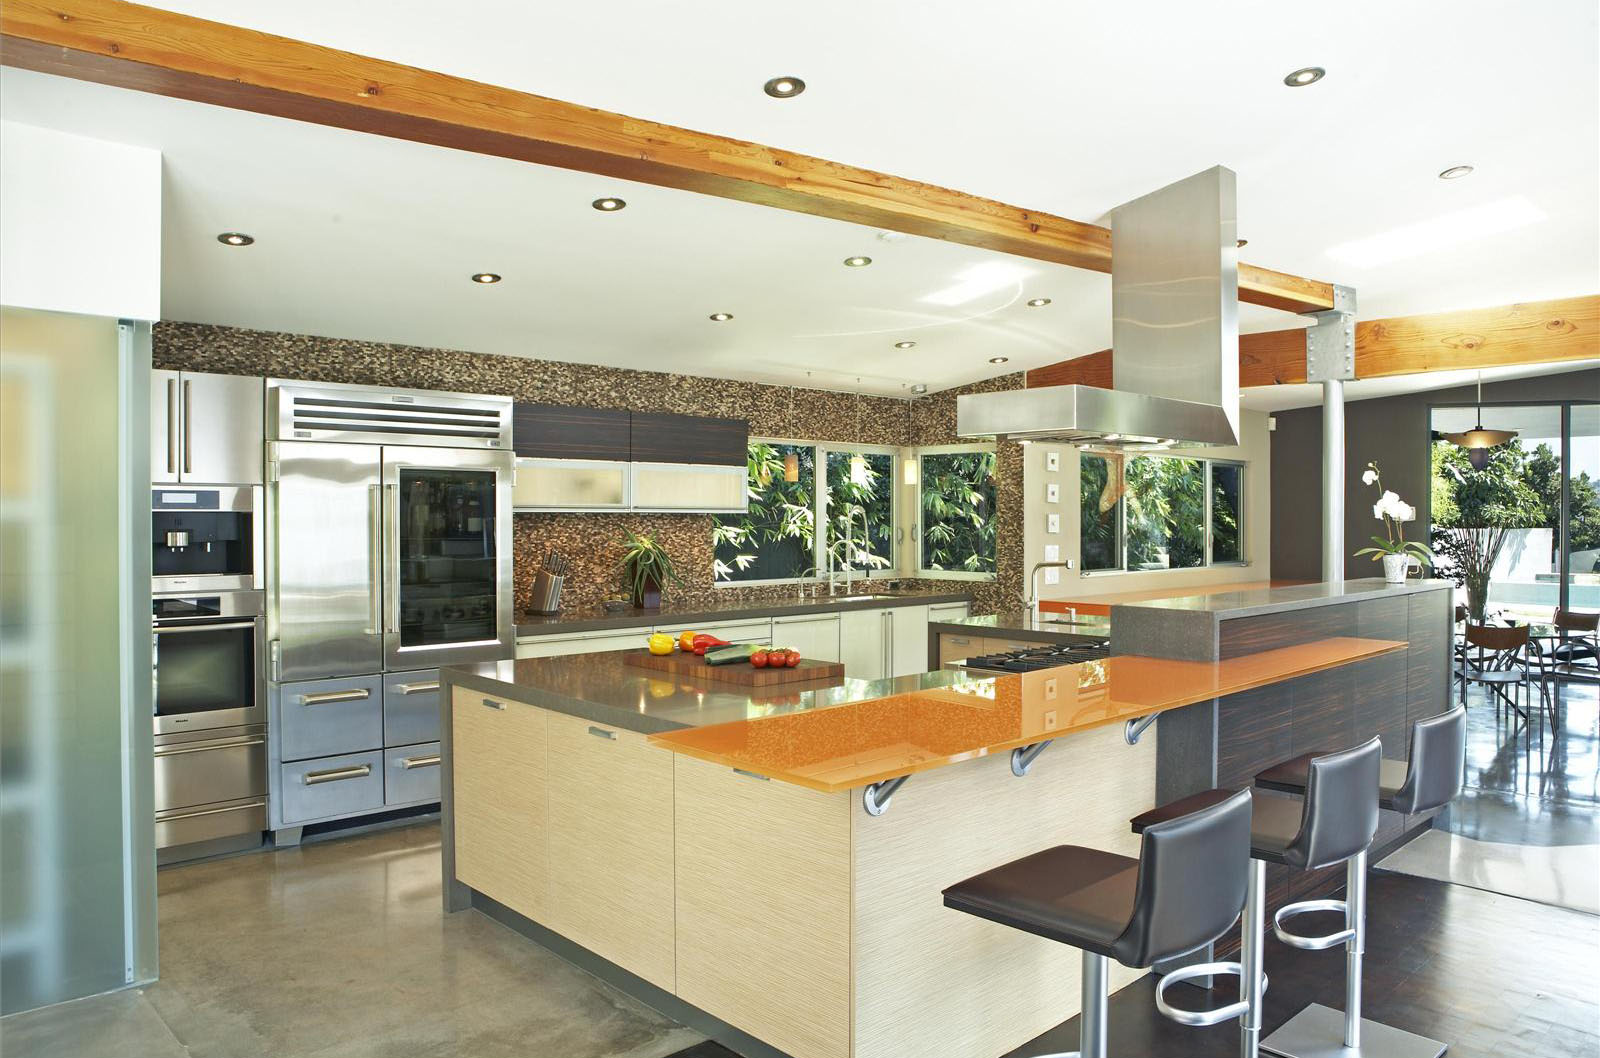 Modern Open Kitchen Design Ideas ~ Open contemporary kitchen design ideas idesignarch